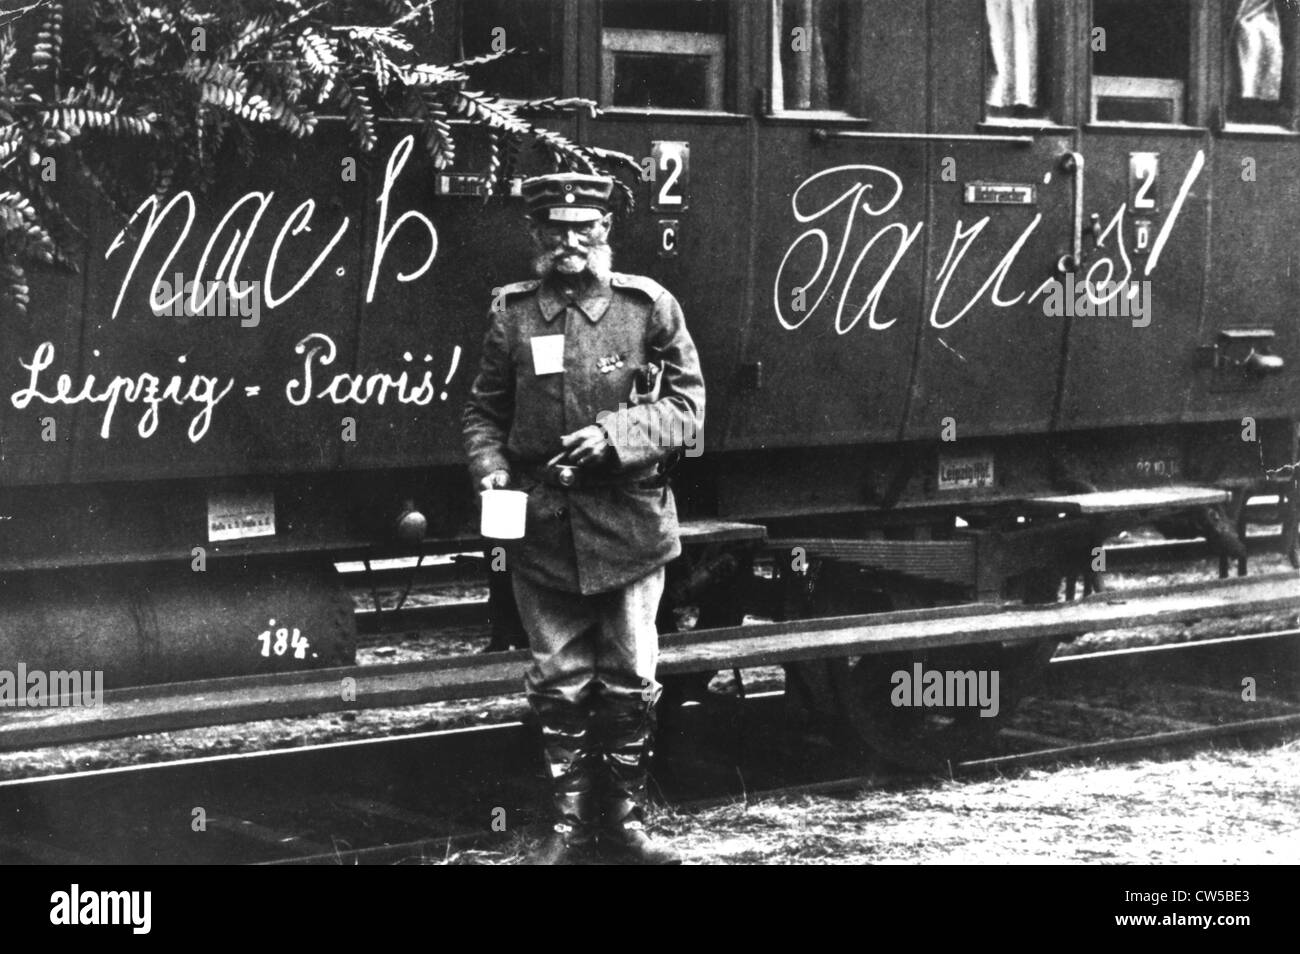 Germany, soldier in front of a train marked 'To Paris!' - Stock Image